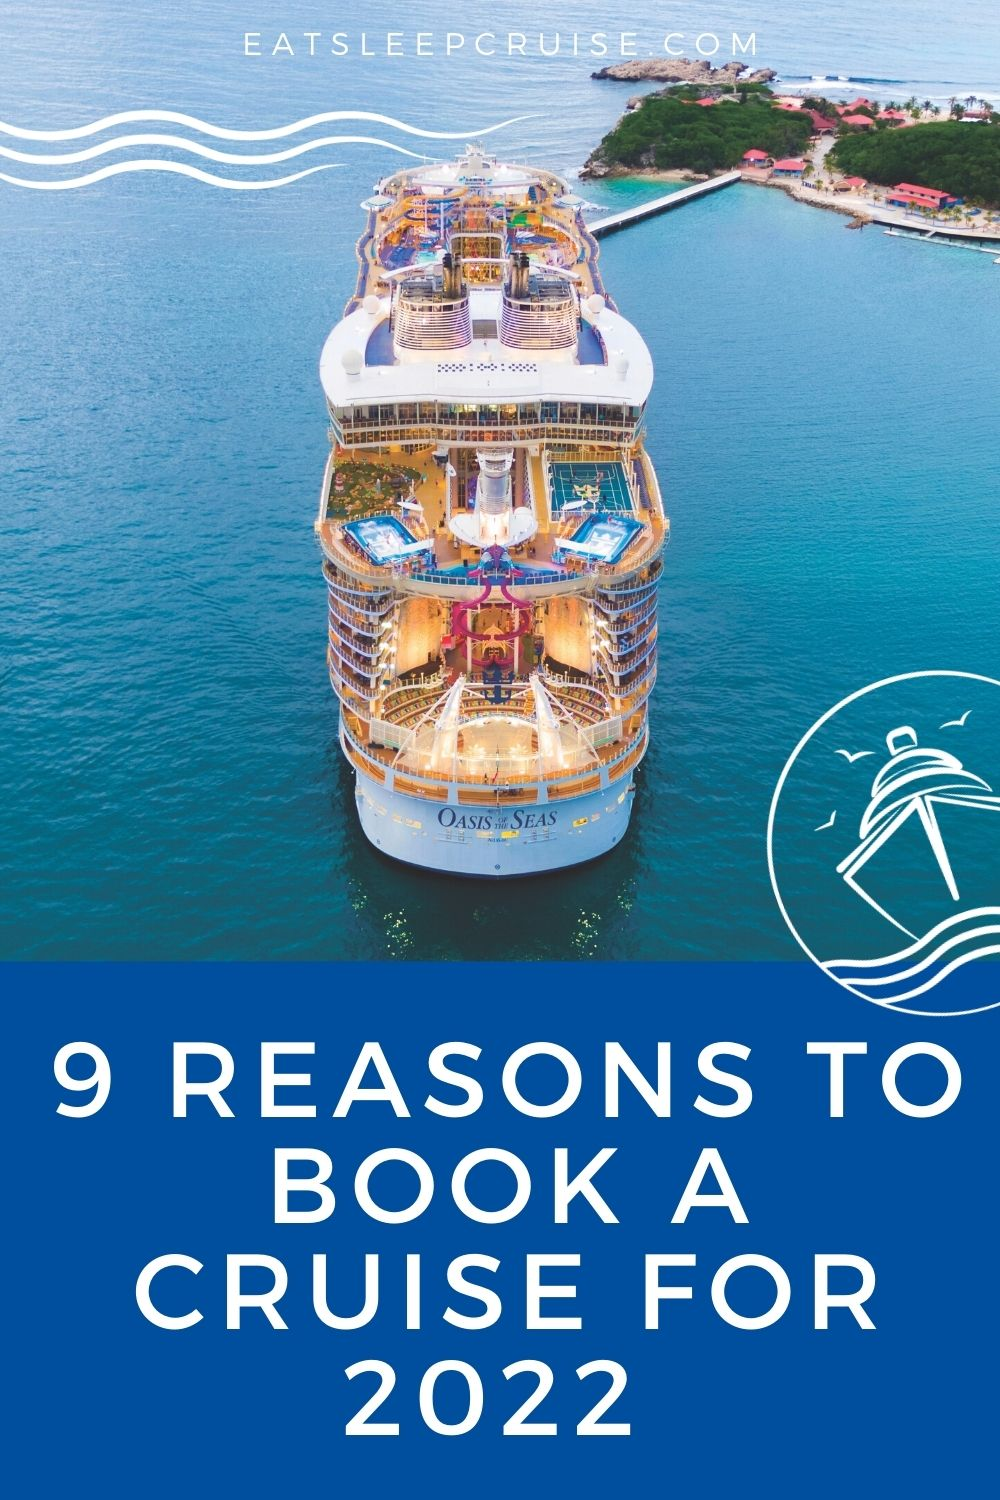 Reasons You Should Book a Cruise for 2022